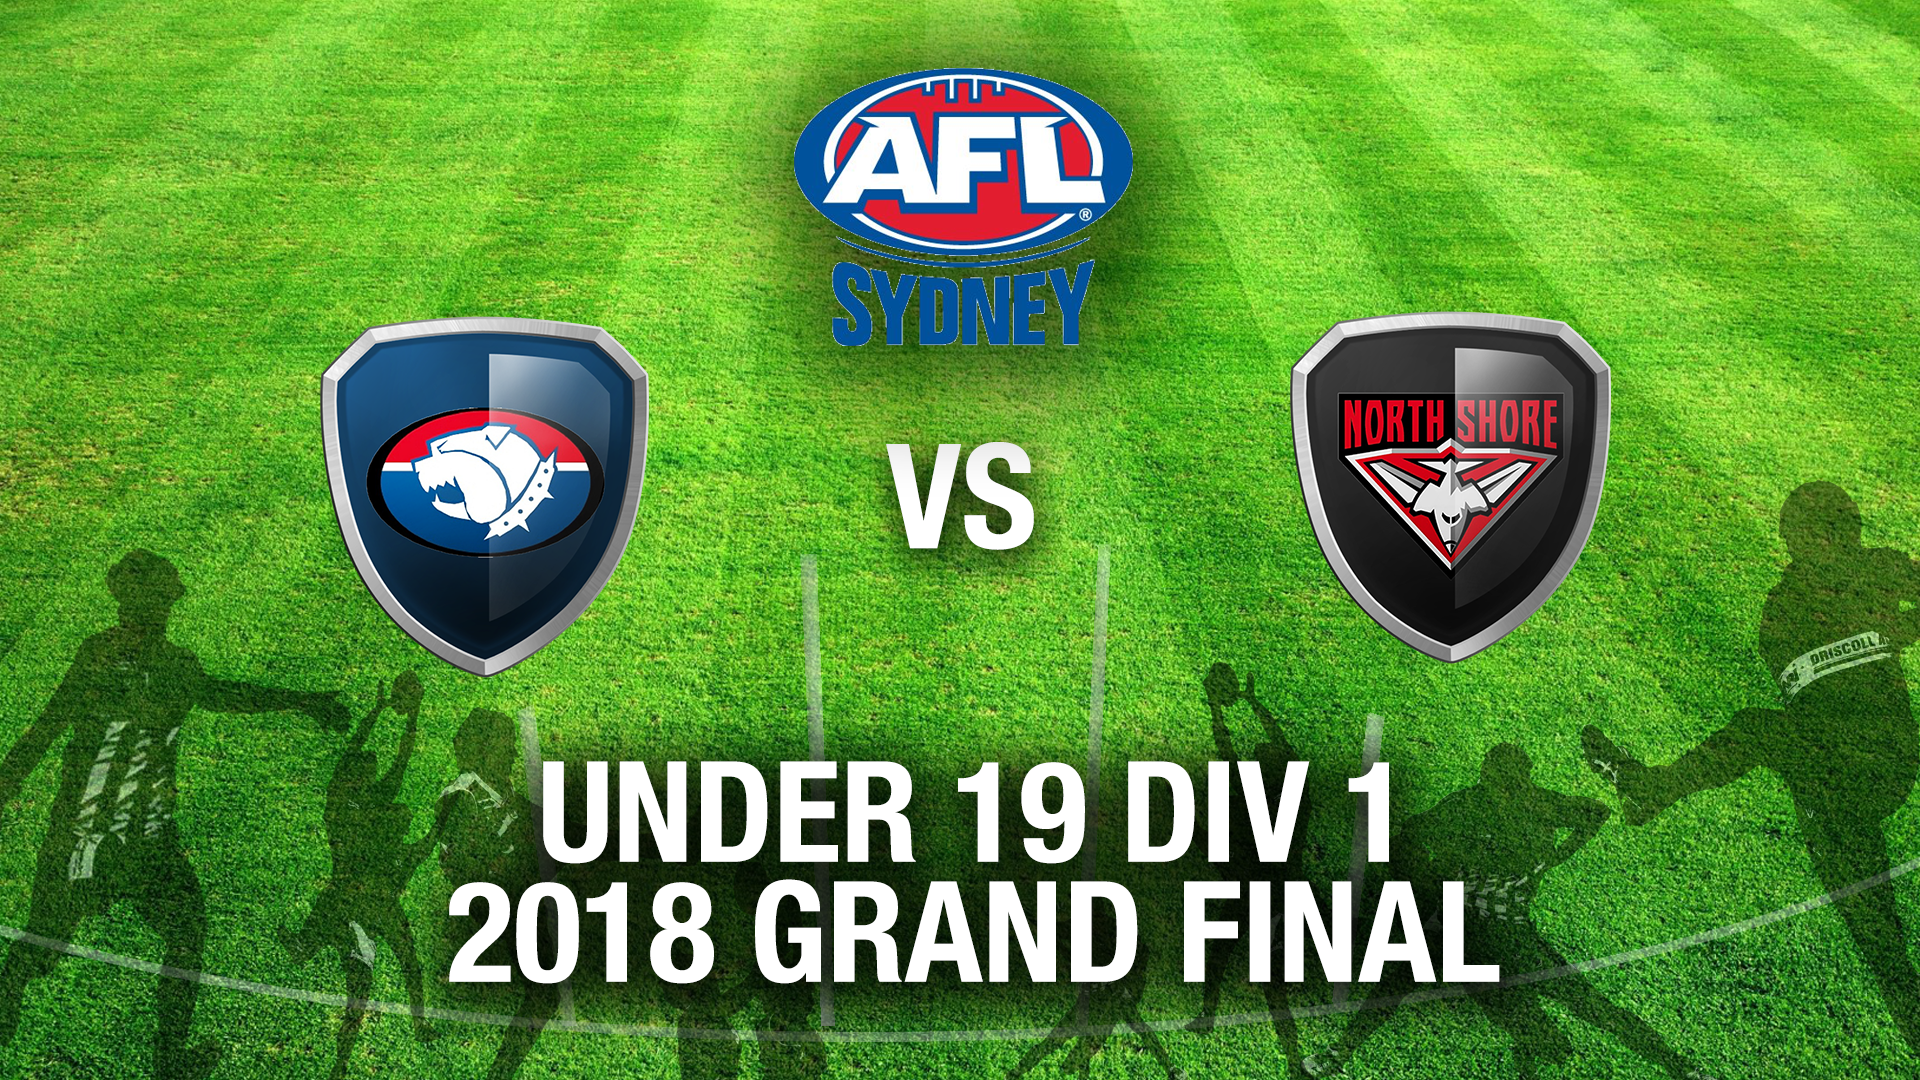 Under 19s Division 1 - Grand Final - UNSW Eastern Suburbs v North Shore Bombers